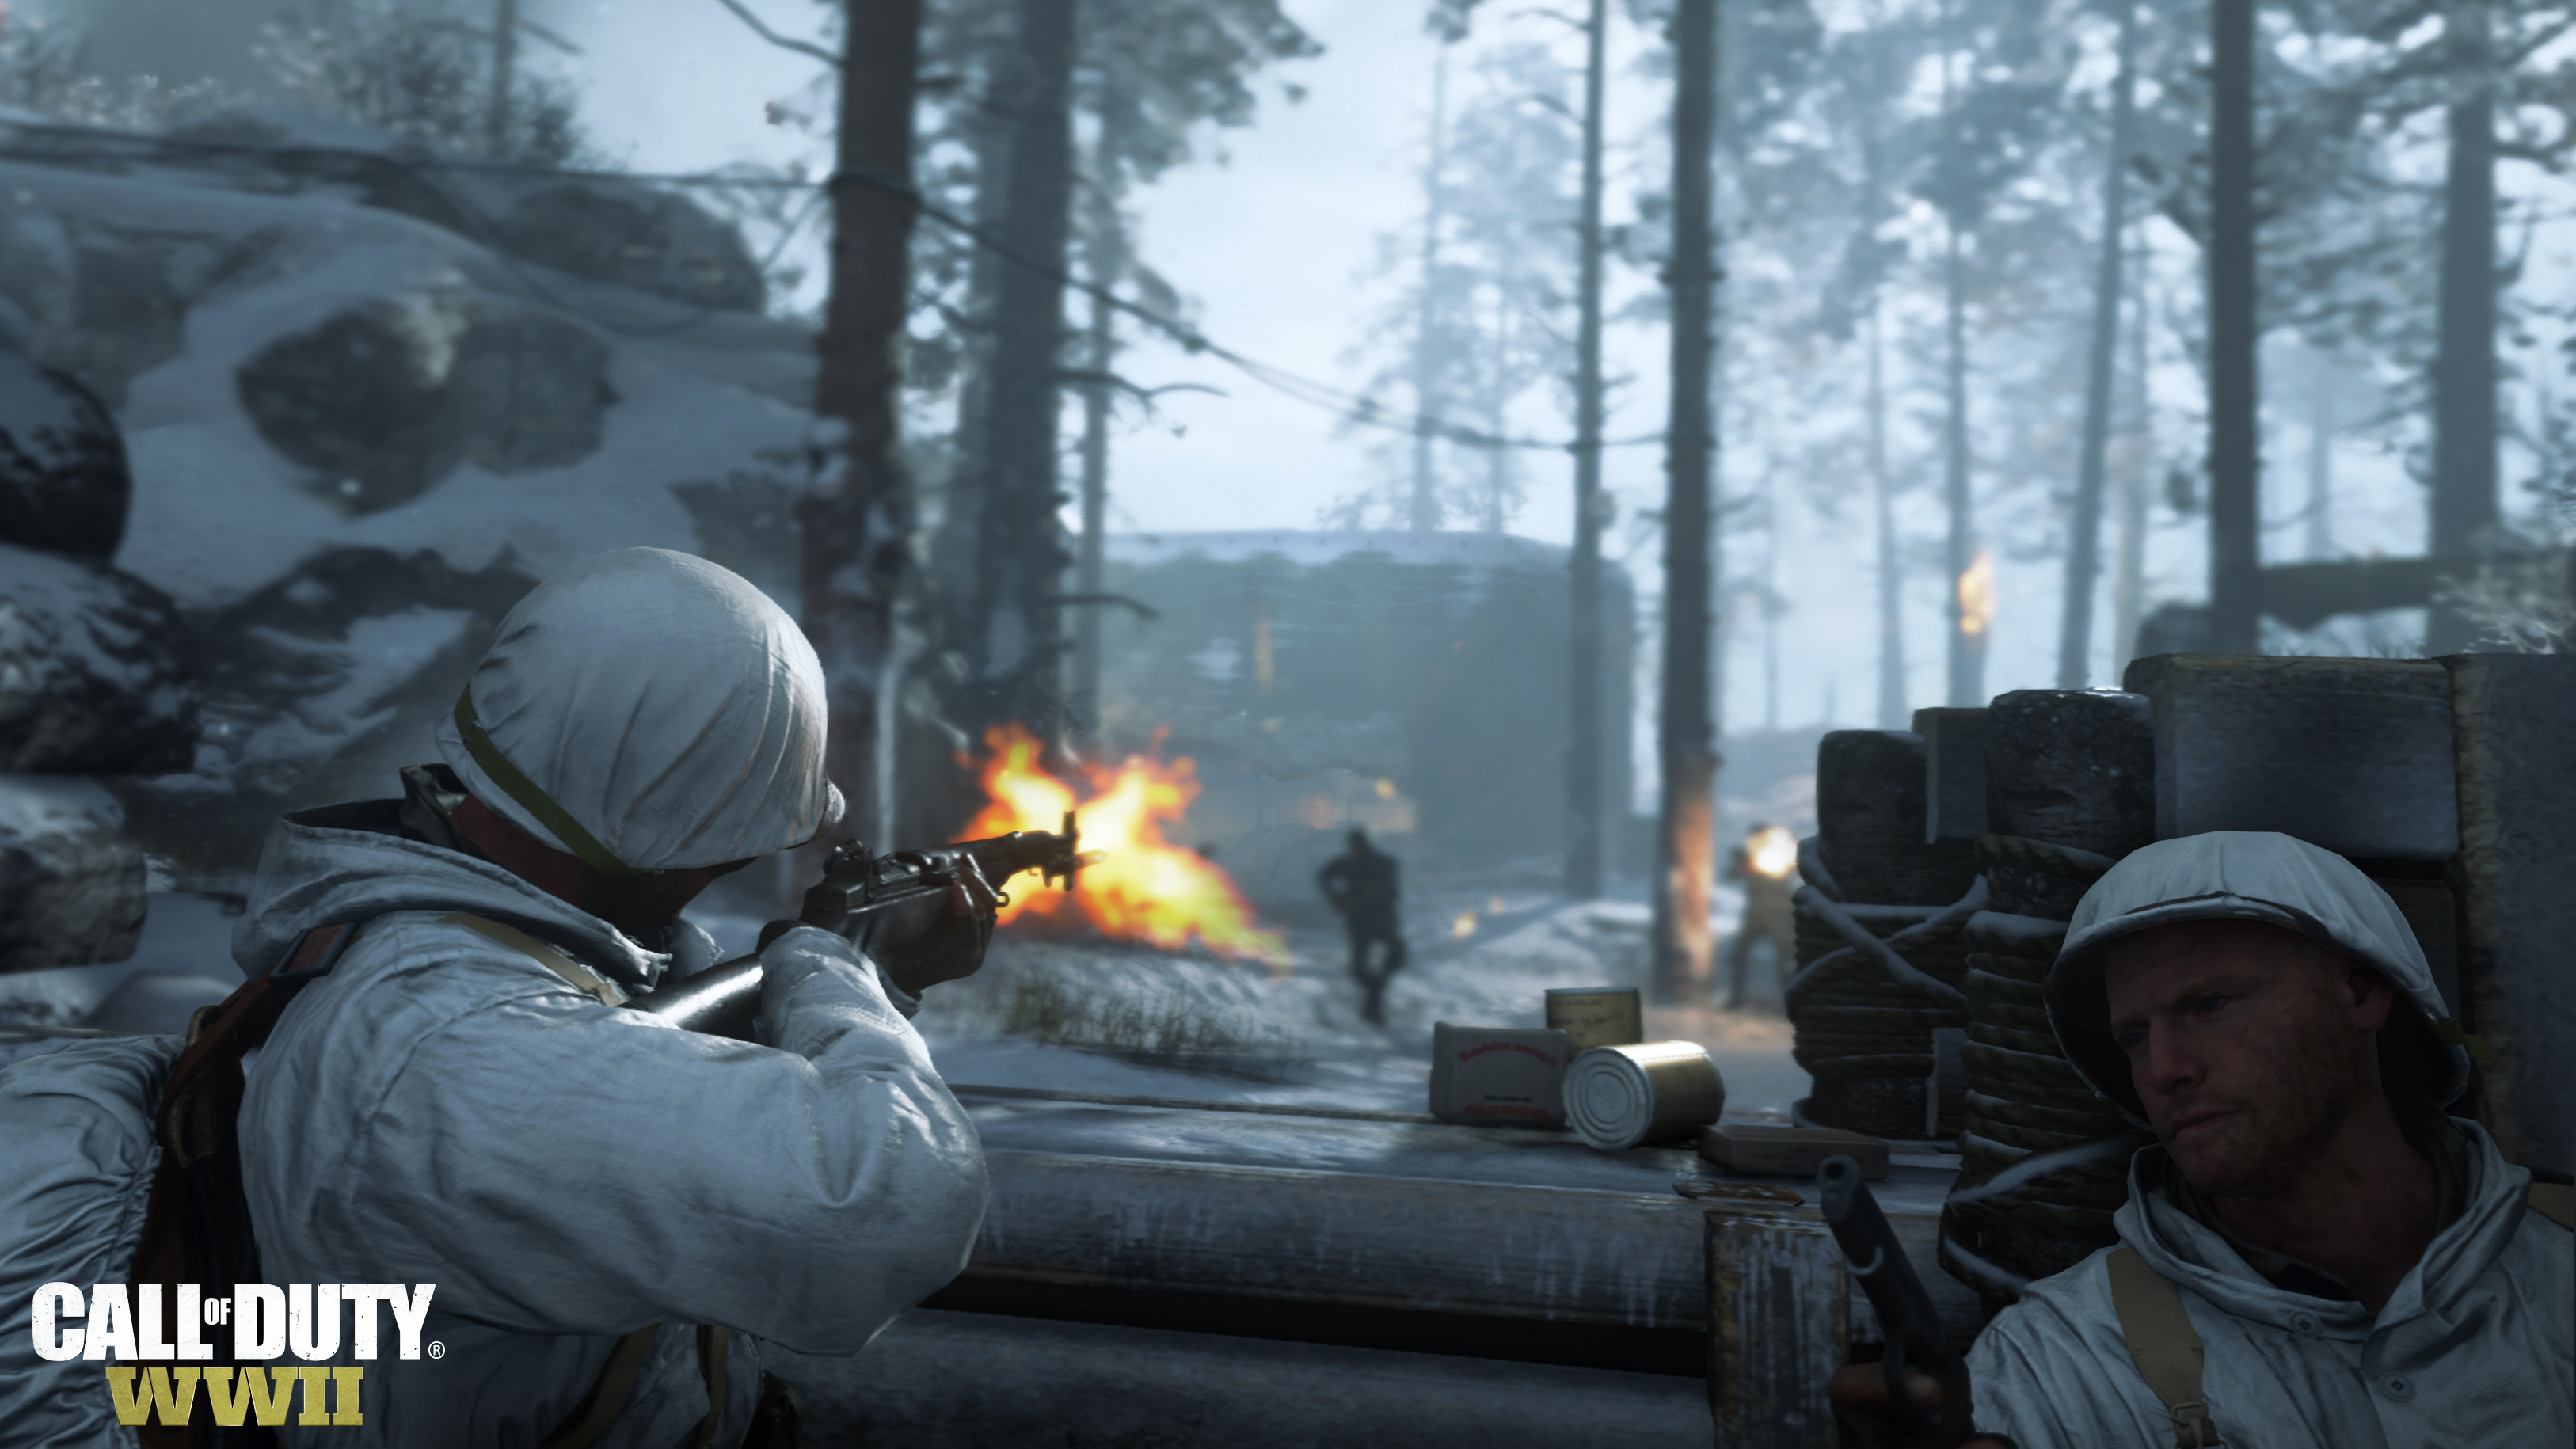 CallofDuty_WWII_E3_Screen_02wm